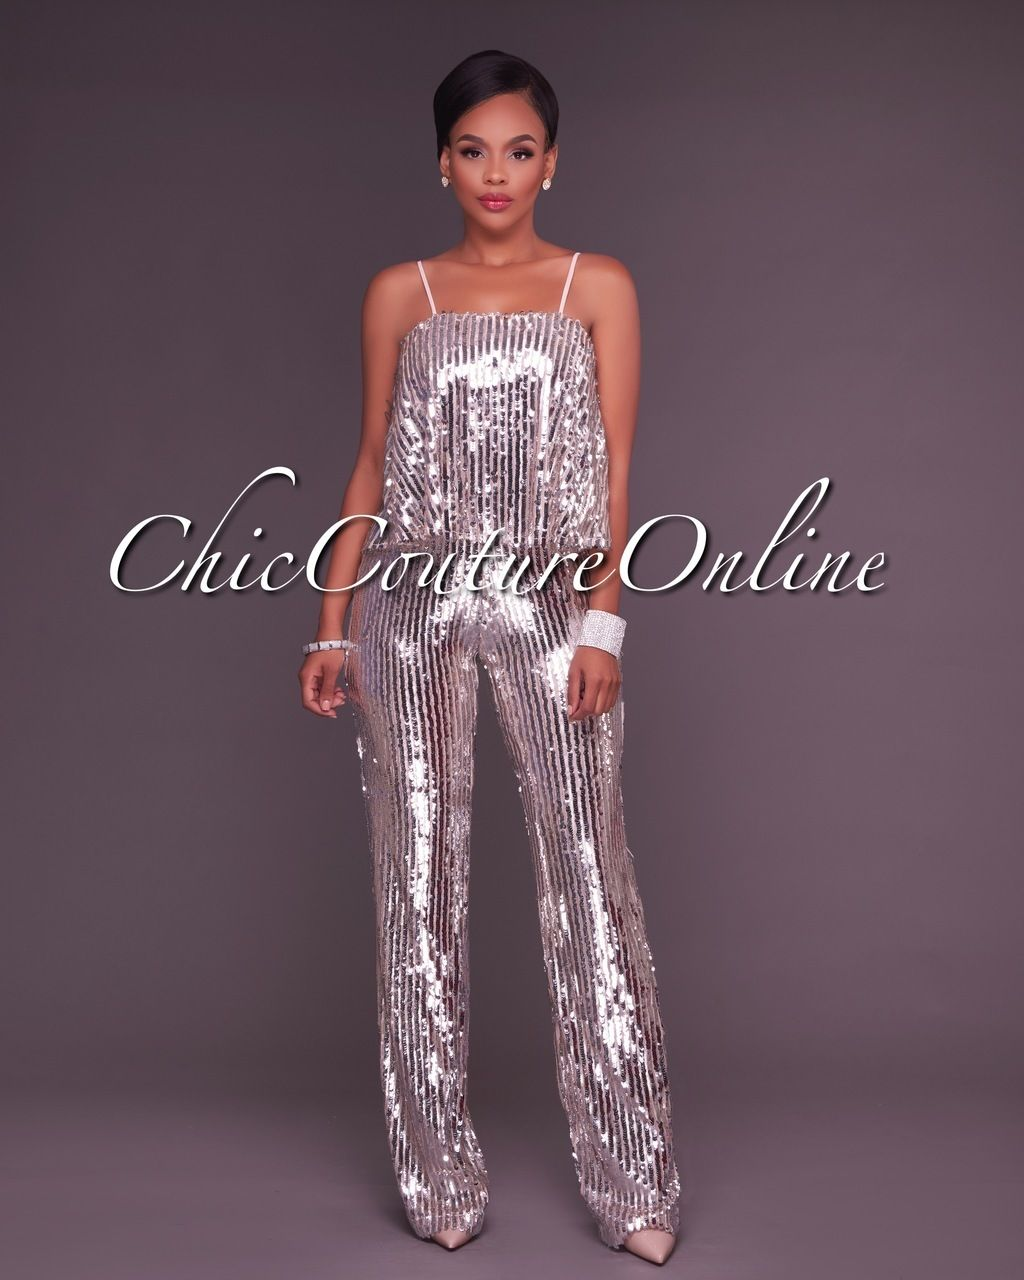 2919aa47b10 Pin by Chic Couture Online on Clothing ~ Chic Couture Online ...